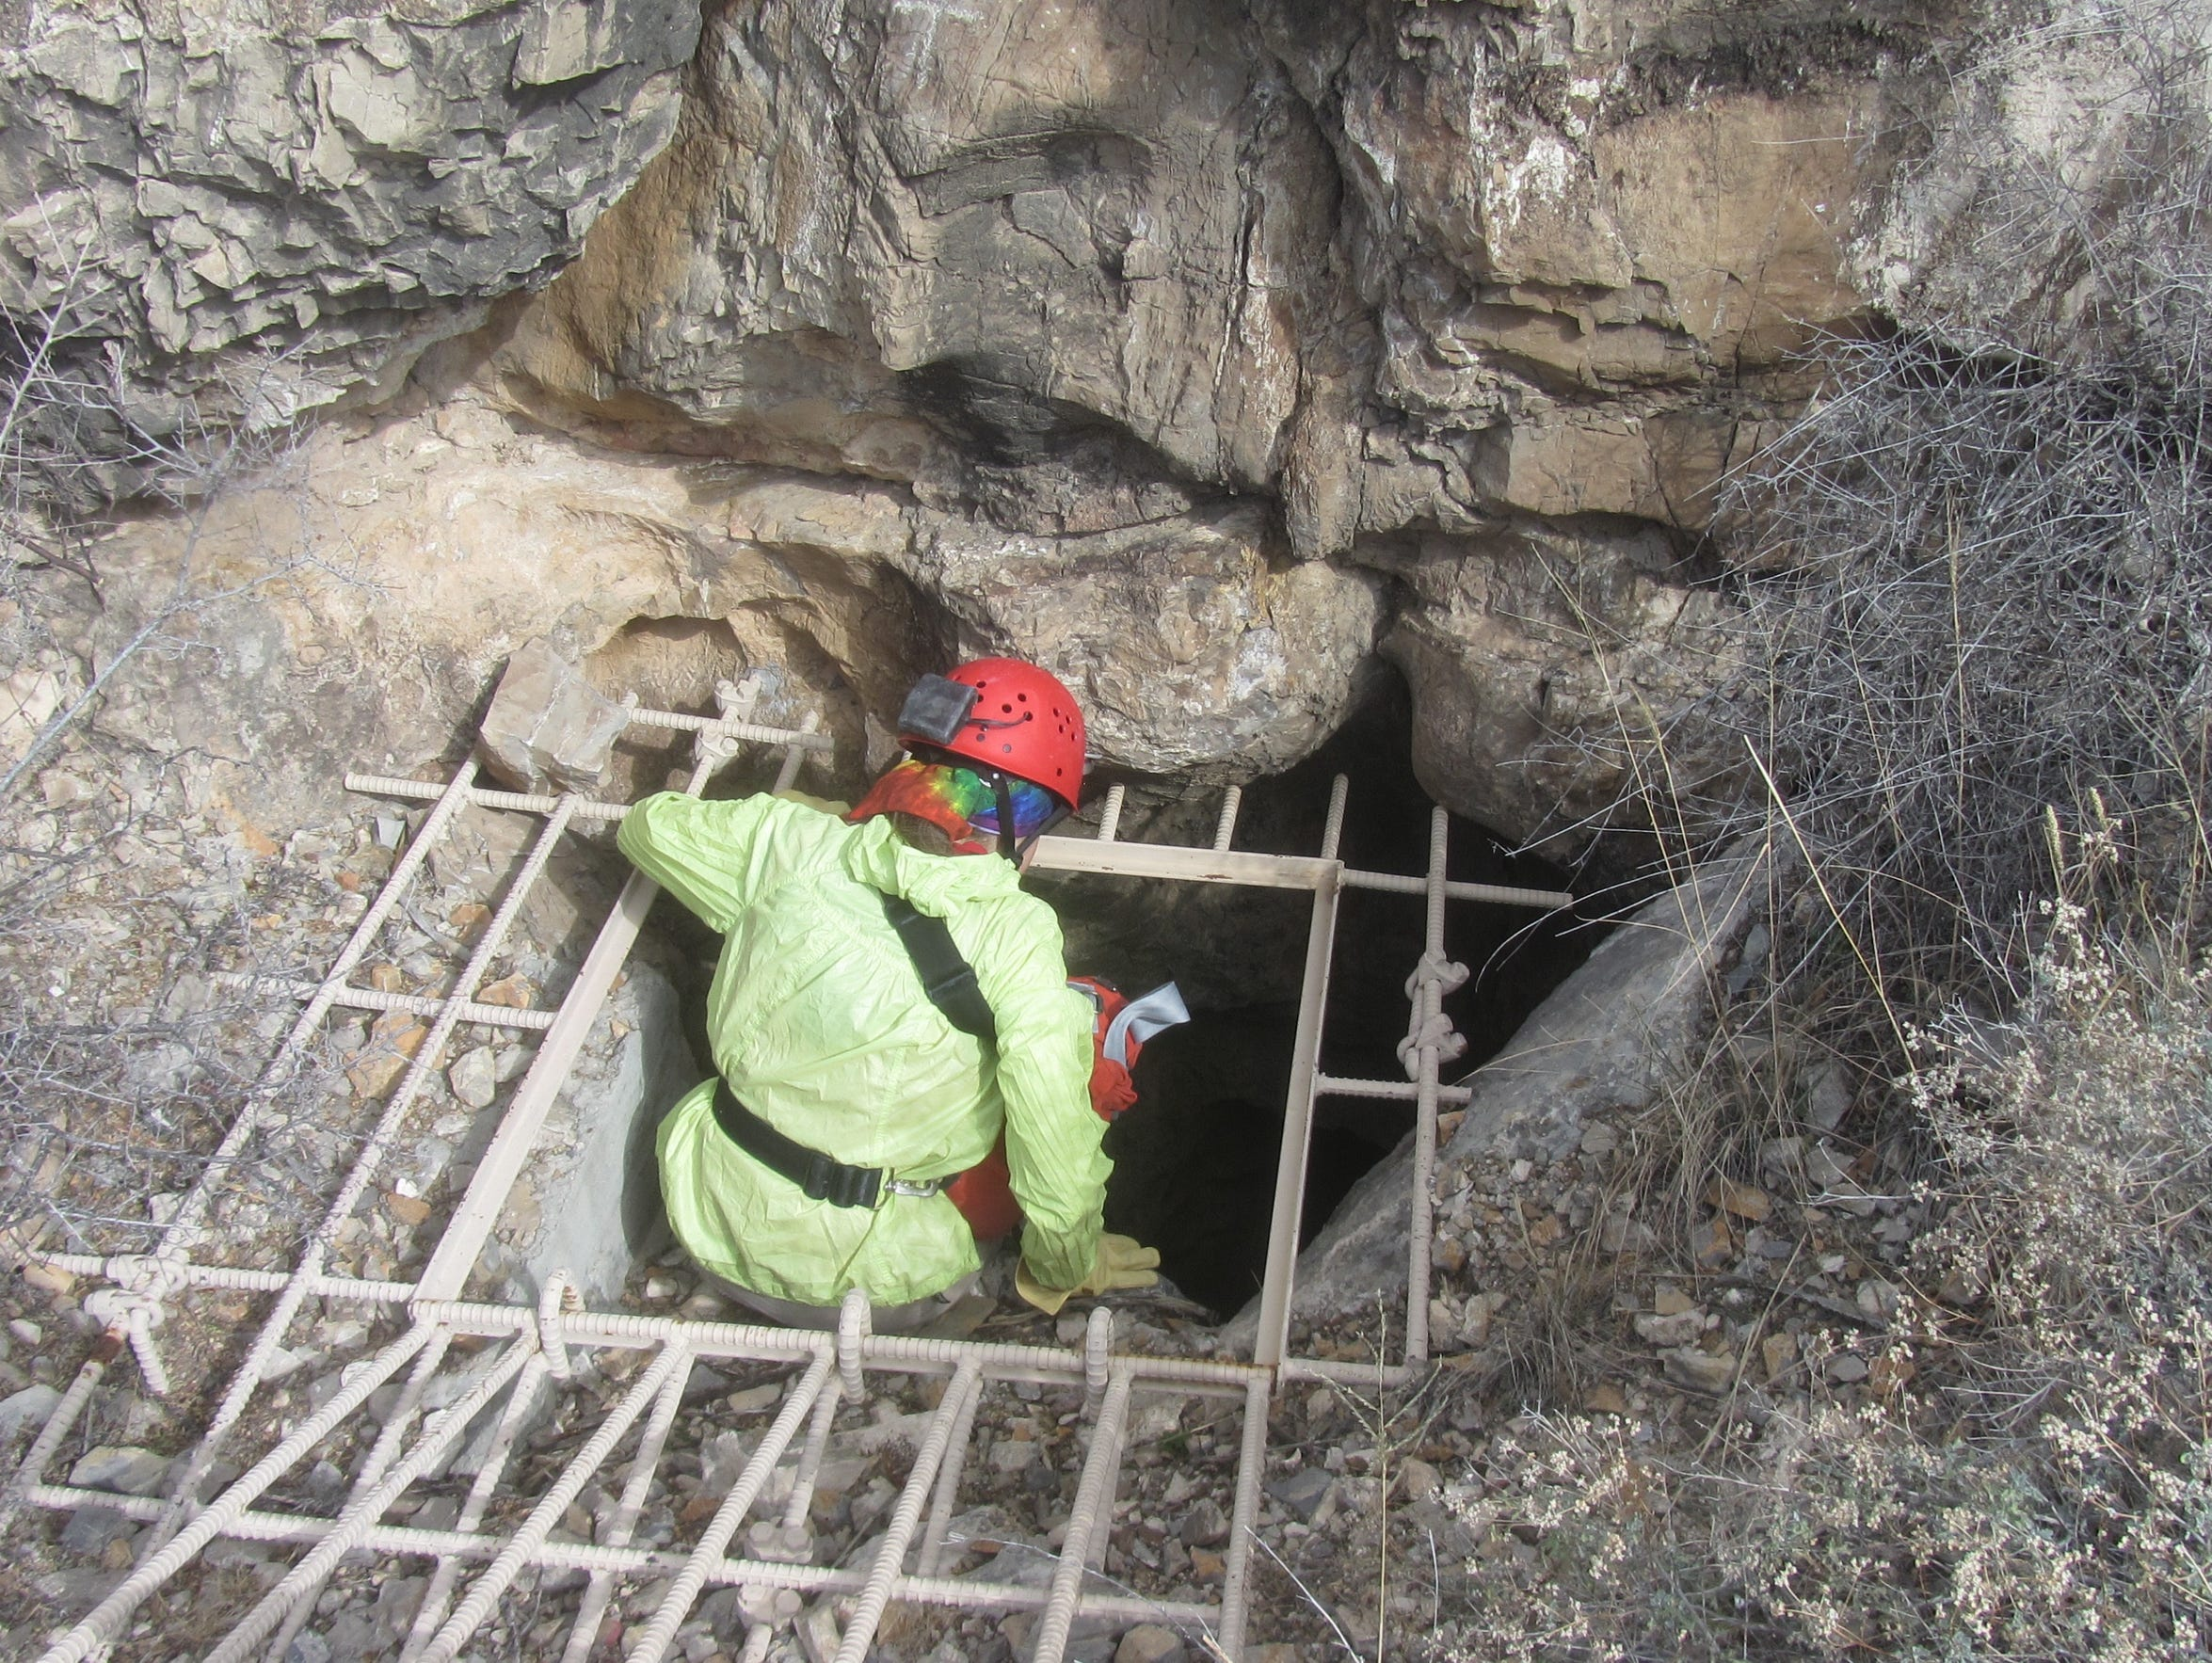 A caver prepares to enter an underground cave. Those going spelunking should wear a hard hat with a chin strap and bring durable clothes and boots, as well as gloves and several light sources.